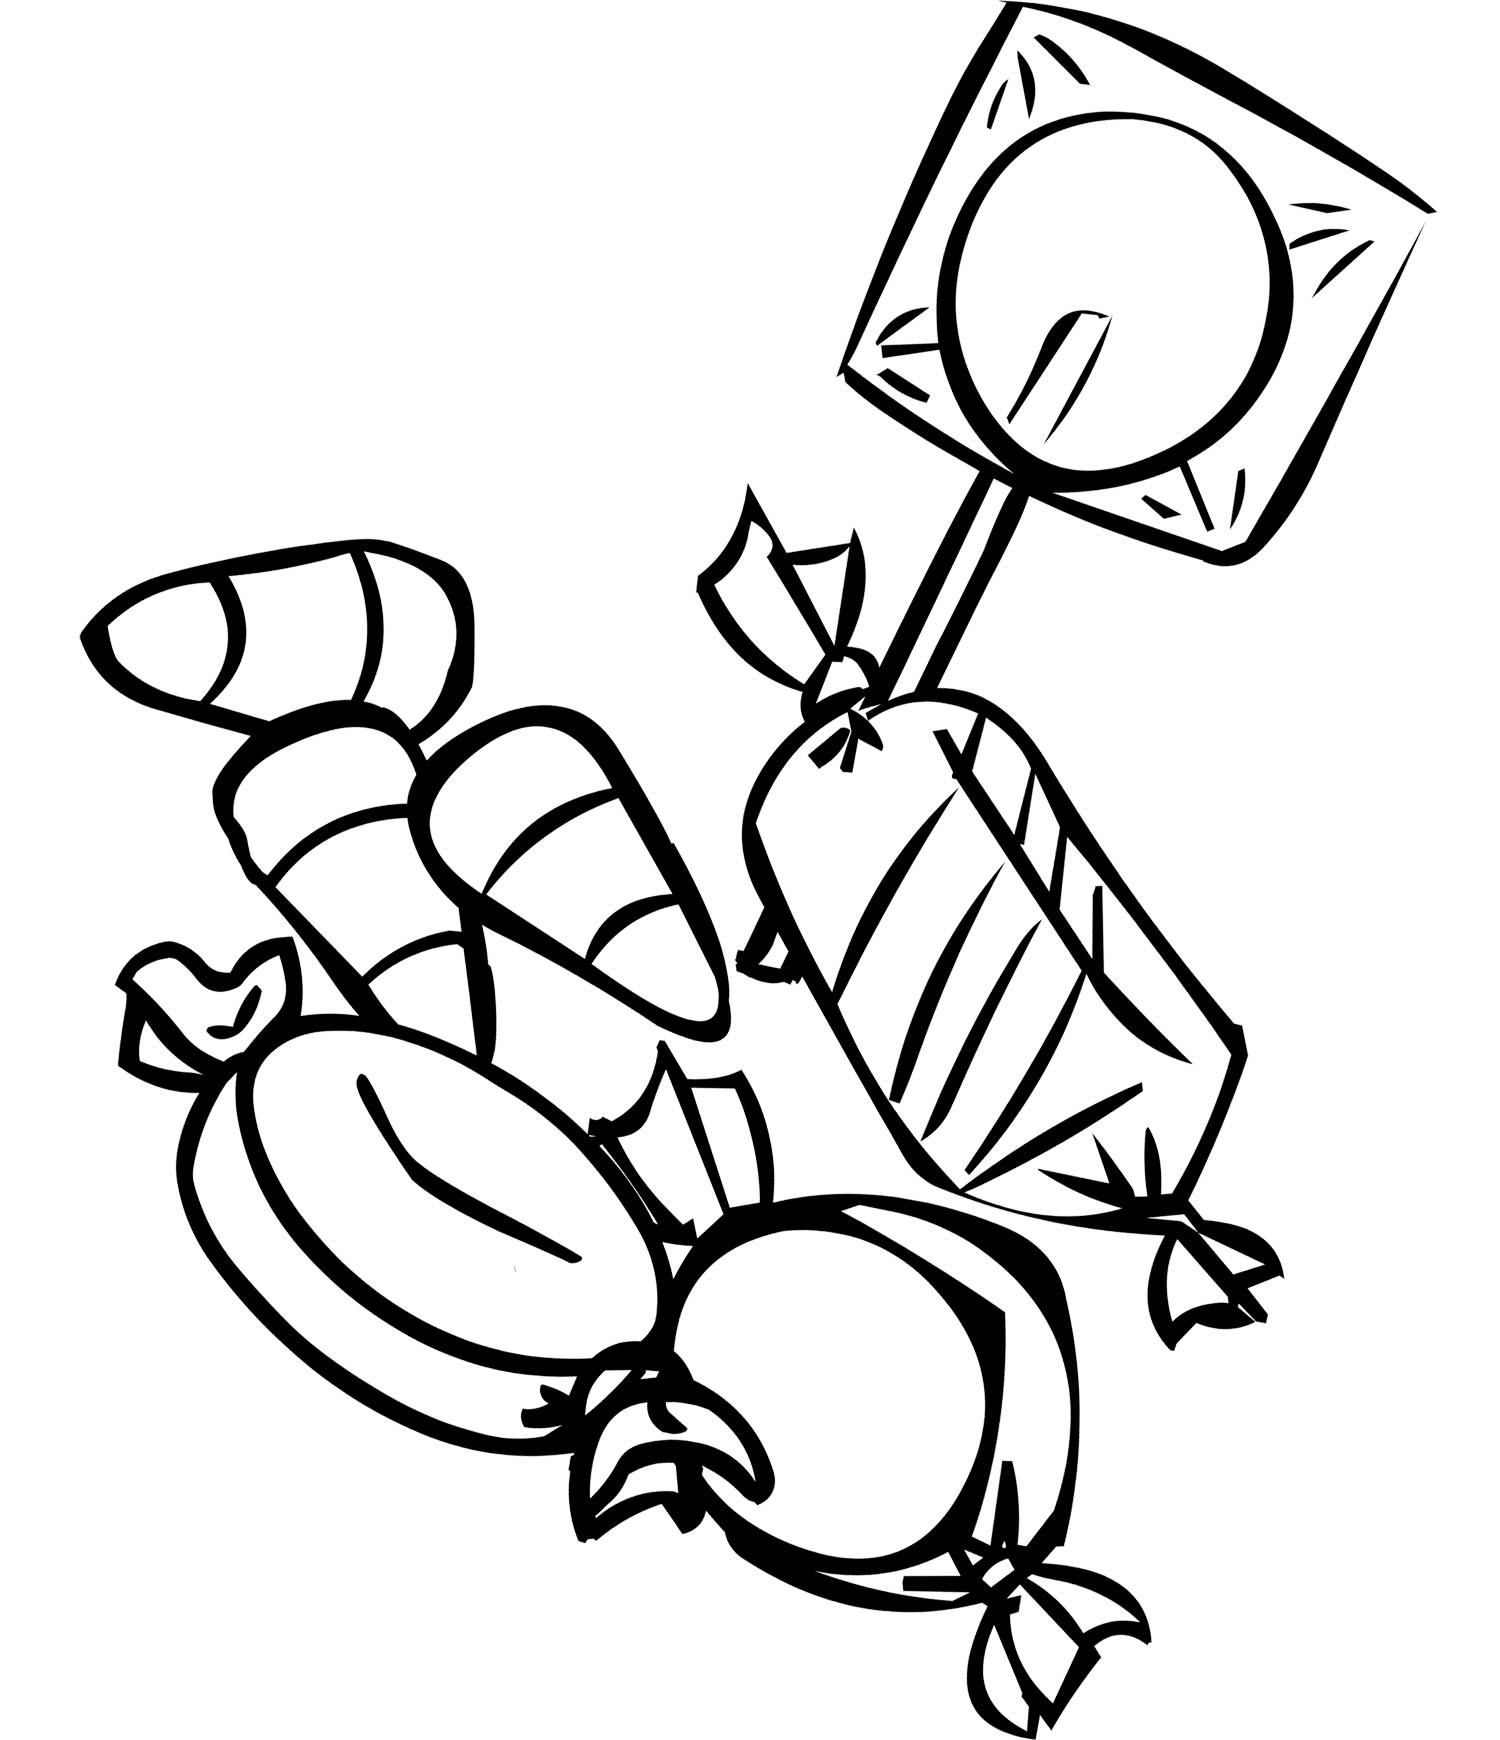 Chocolate Coloring Pages  Free Printable Candy Coloring Pages For Kids